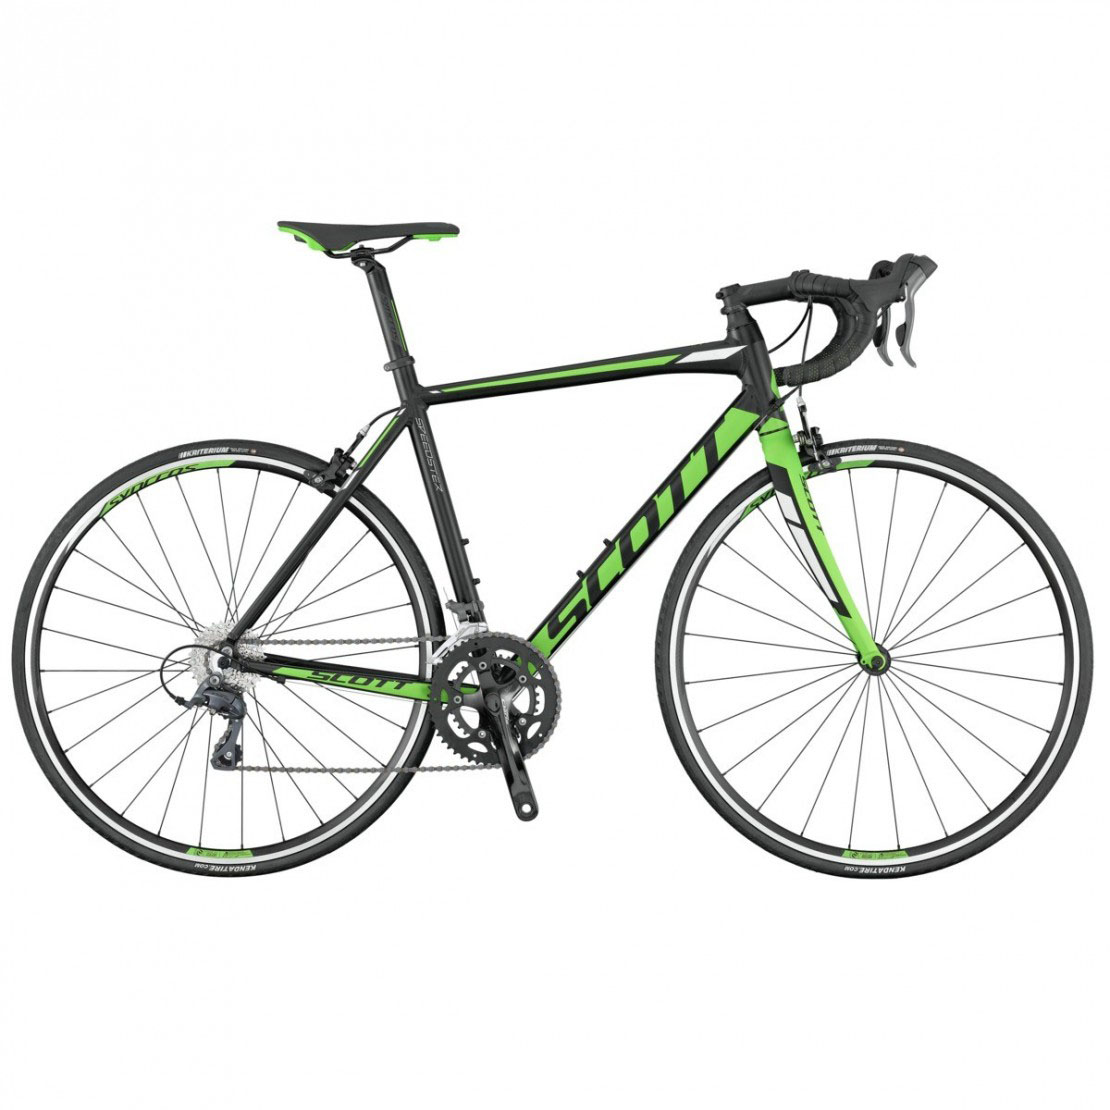 Speedster 40 CD16 2017 - Road Bike